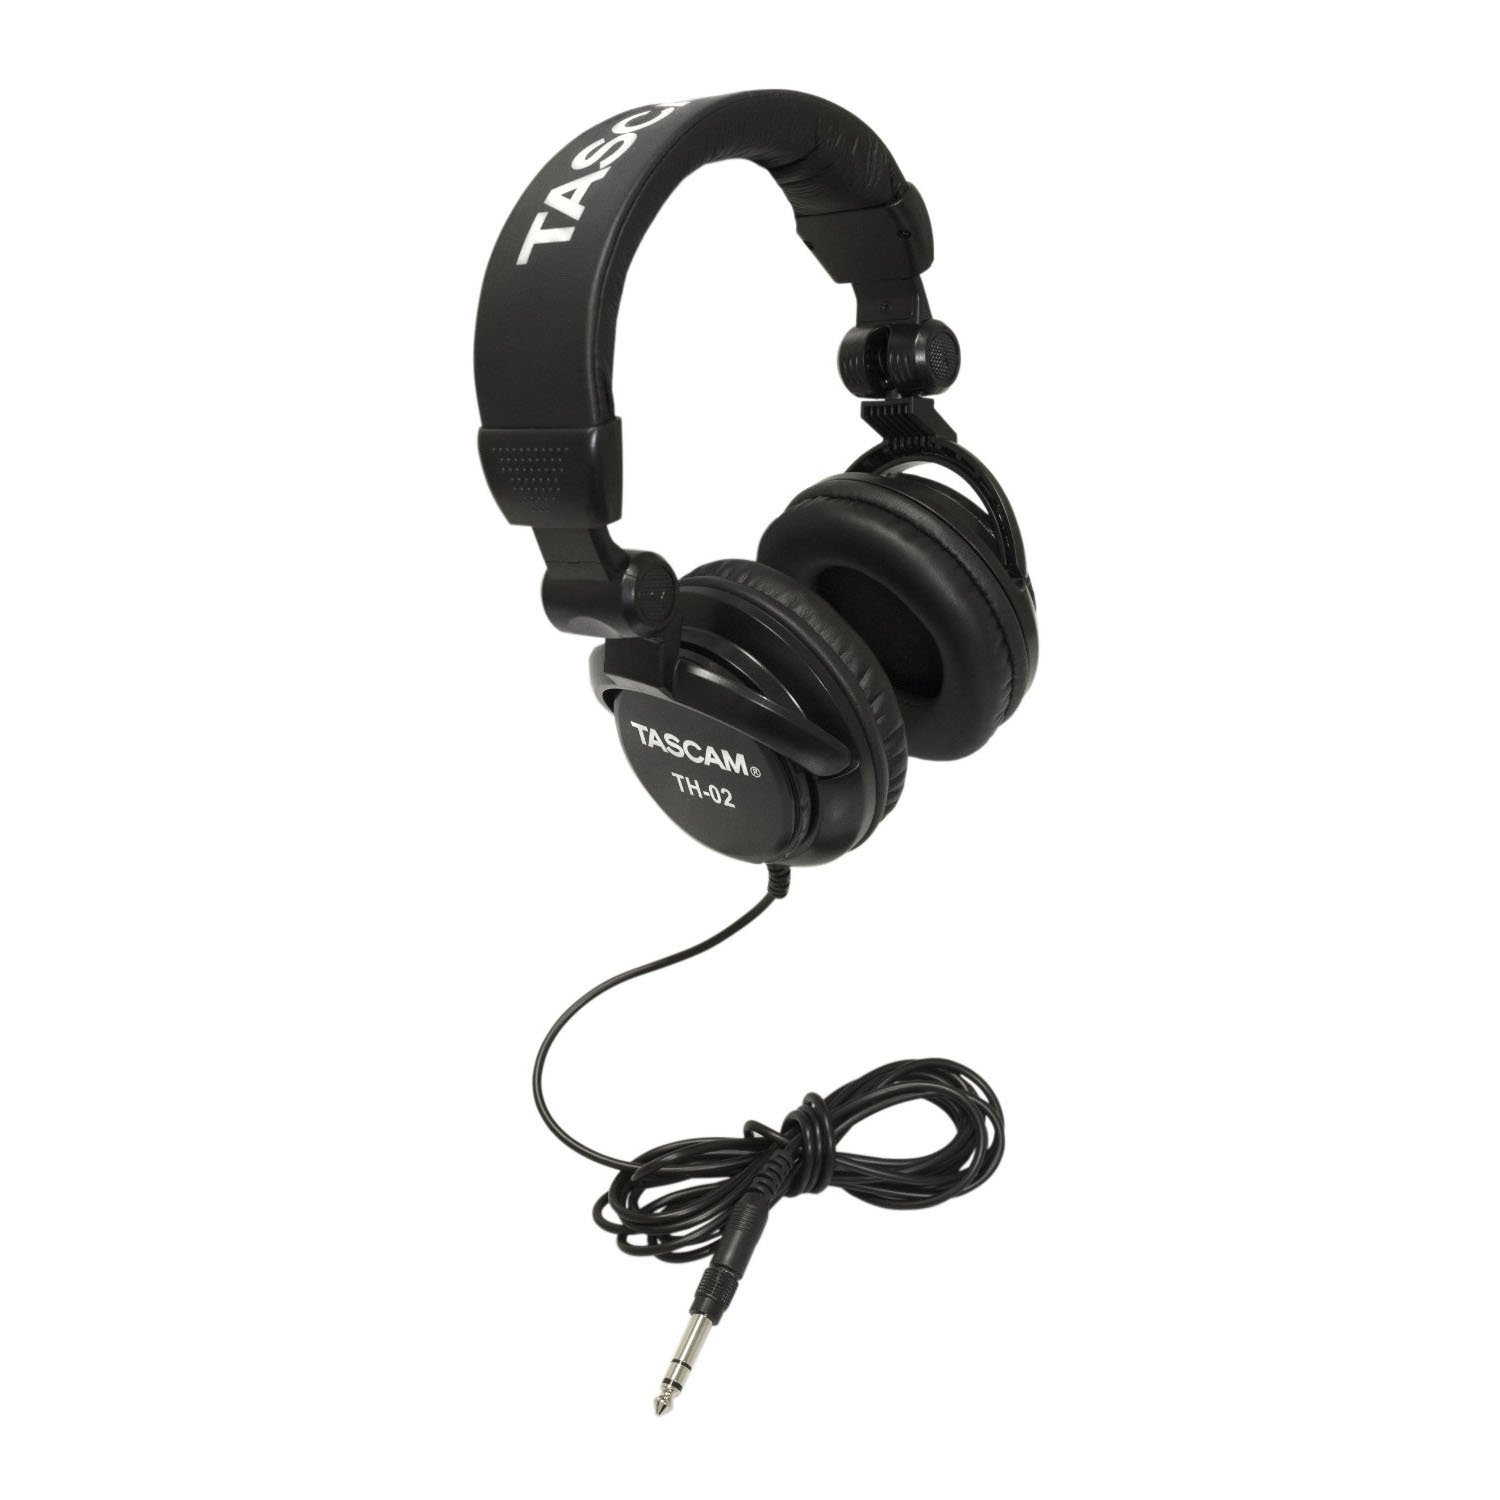 Yamaha MG06 6-Input Compact Stereo Mixer with 30ft Xlr-To-Xlr Female-To-Male Mic Cable, 10 ft Instrument Cable, Samson Stereo Headphones and Micro Fiber Cleaning Cloth